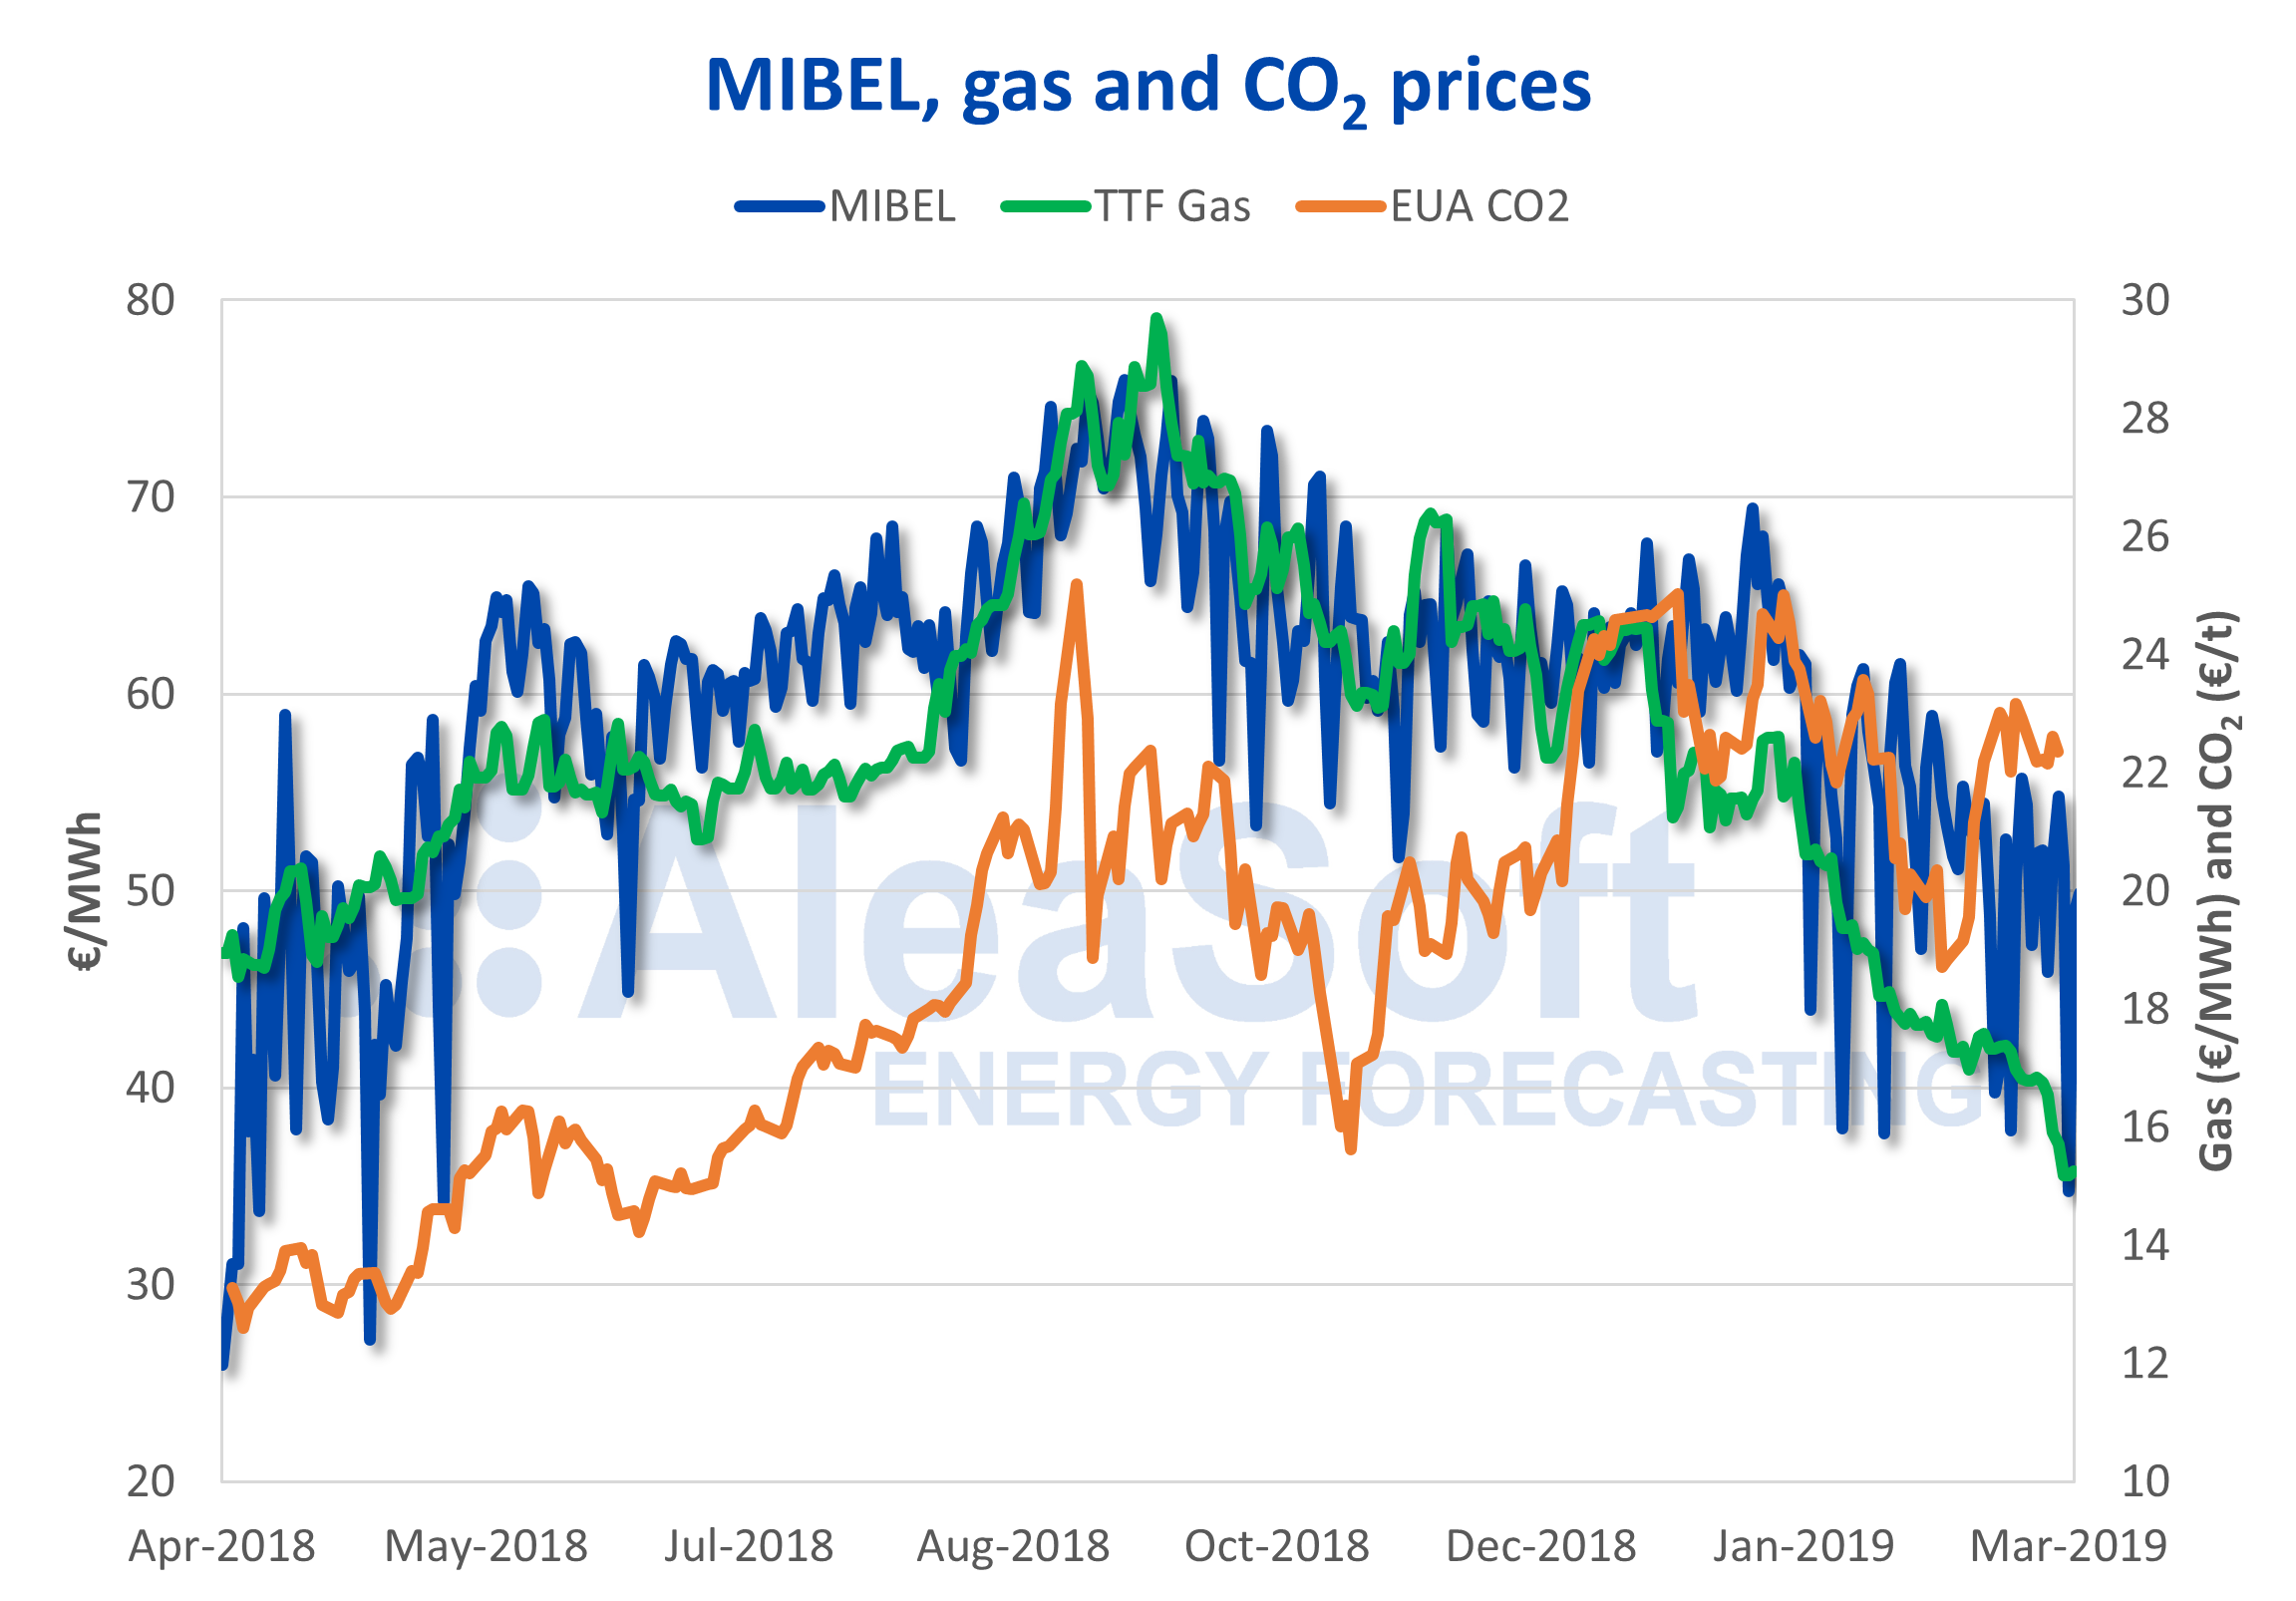 AleaSoft - MIBEL electricity market price TTF gas CO2 EUA emission rights